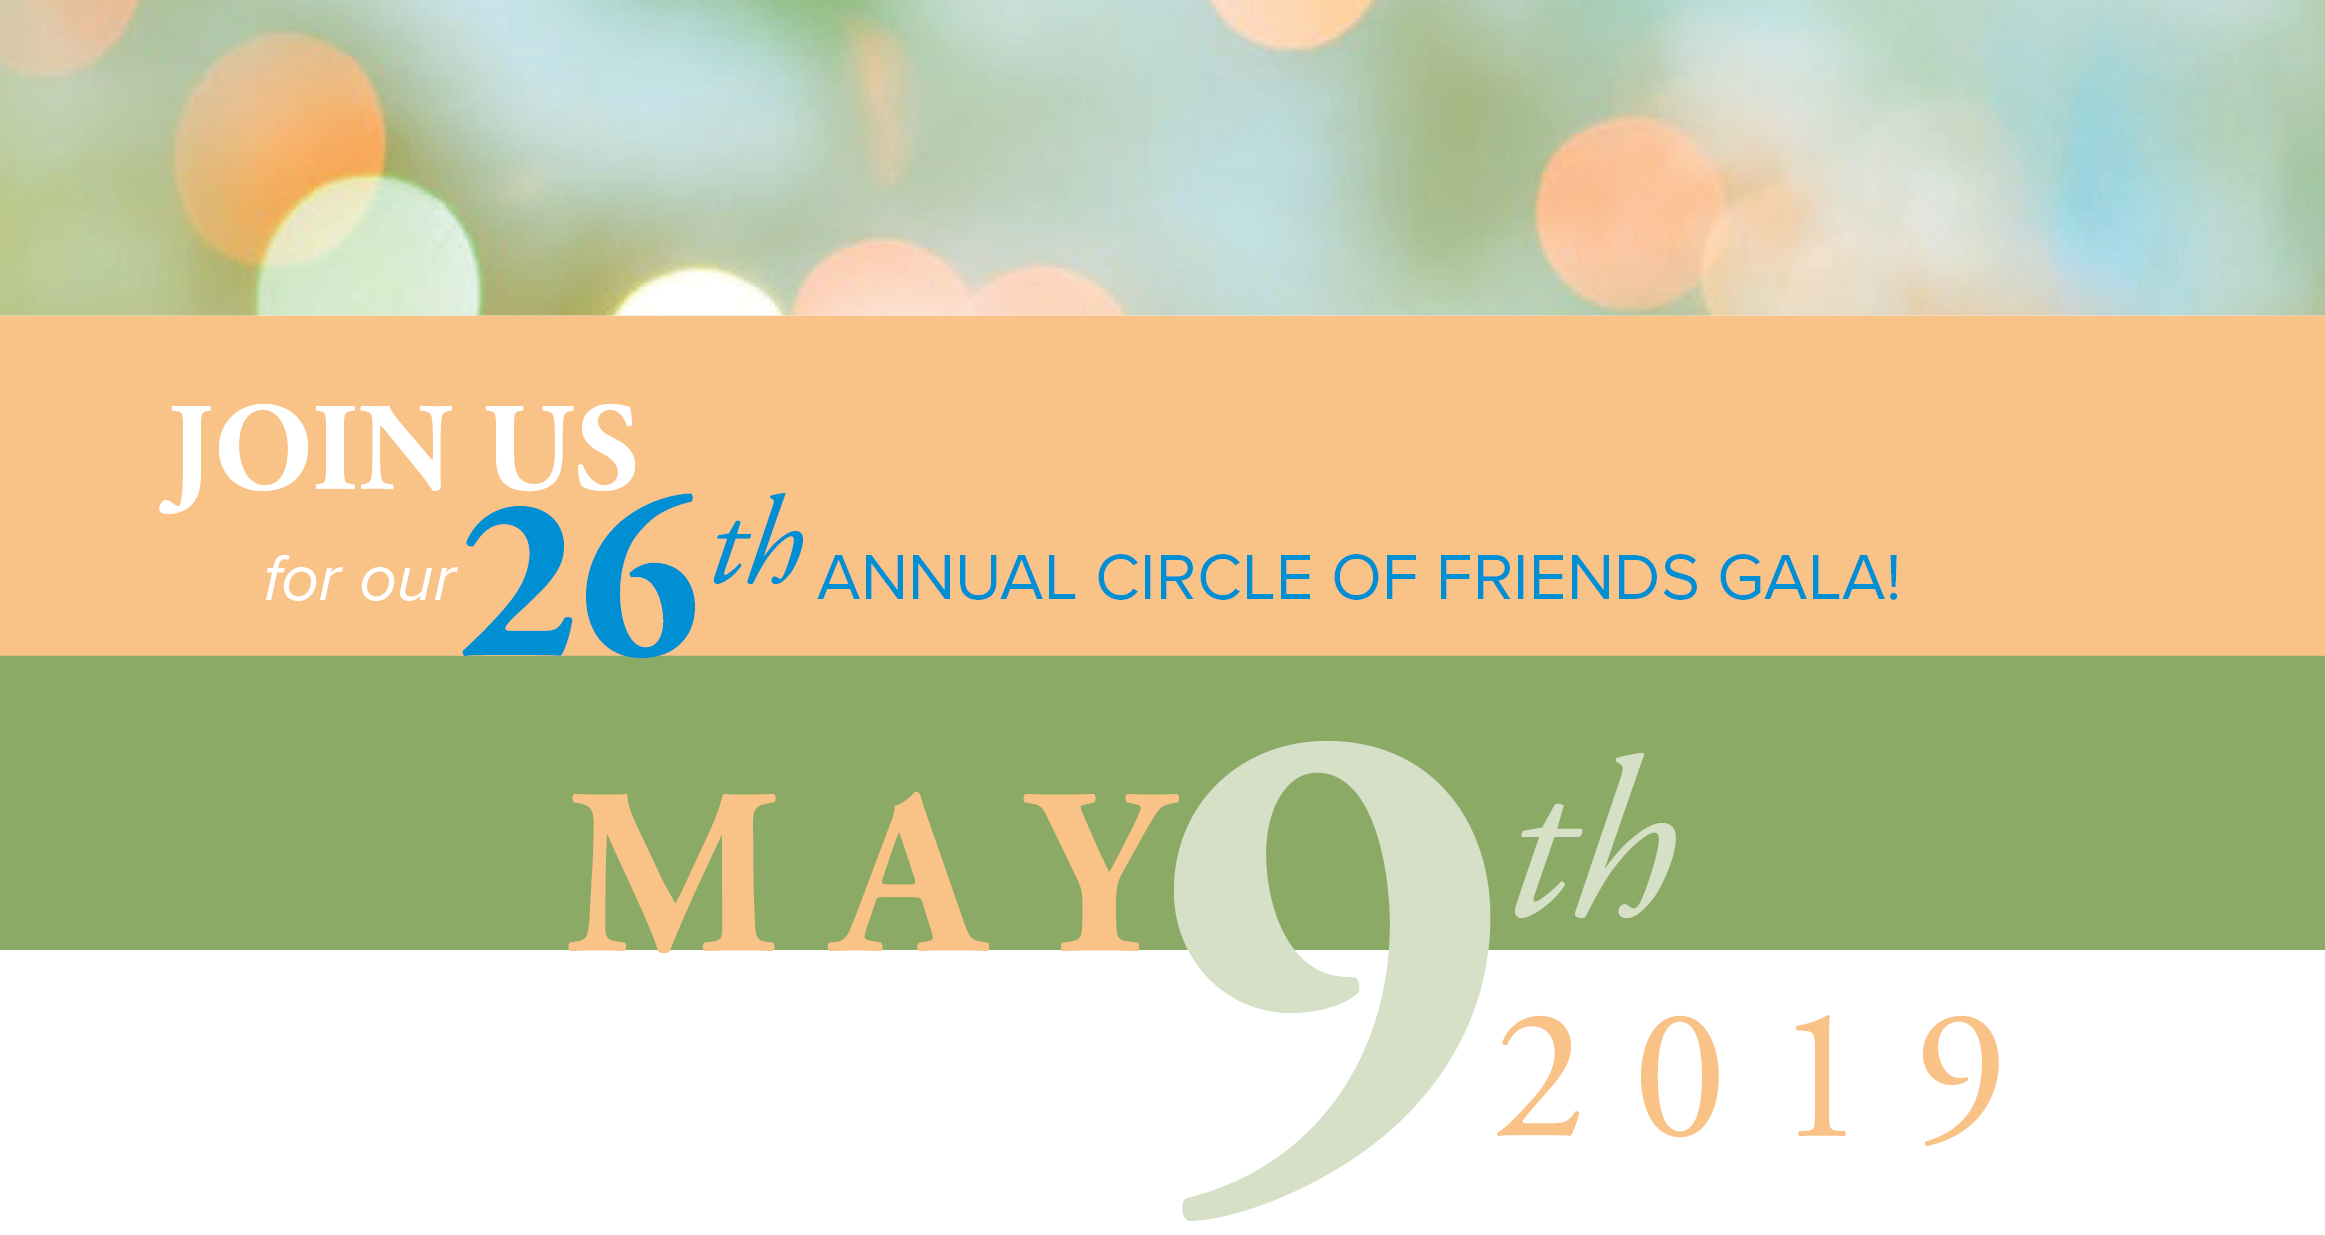 Join us for the 26th Annual Circle of Friends Gala!